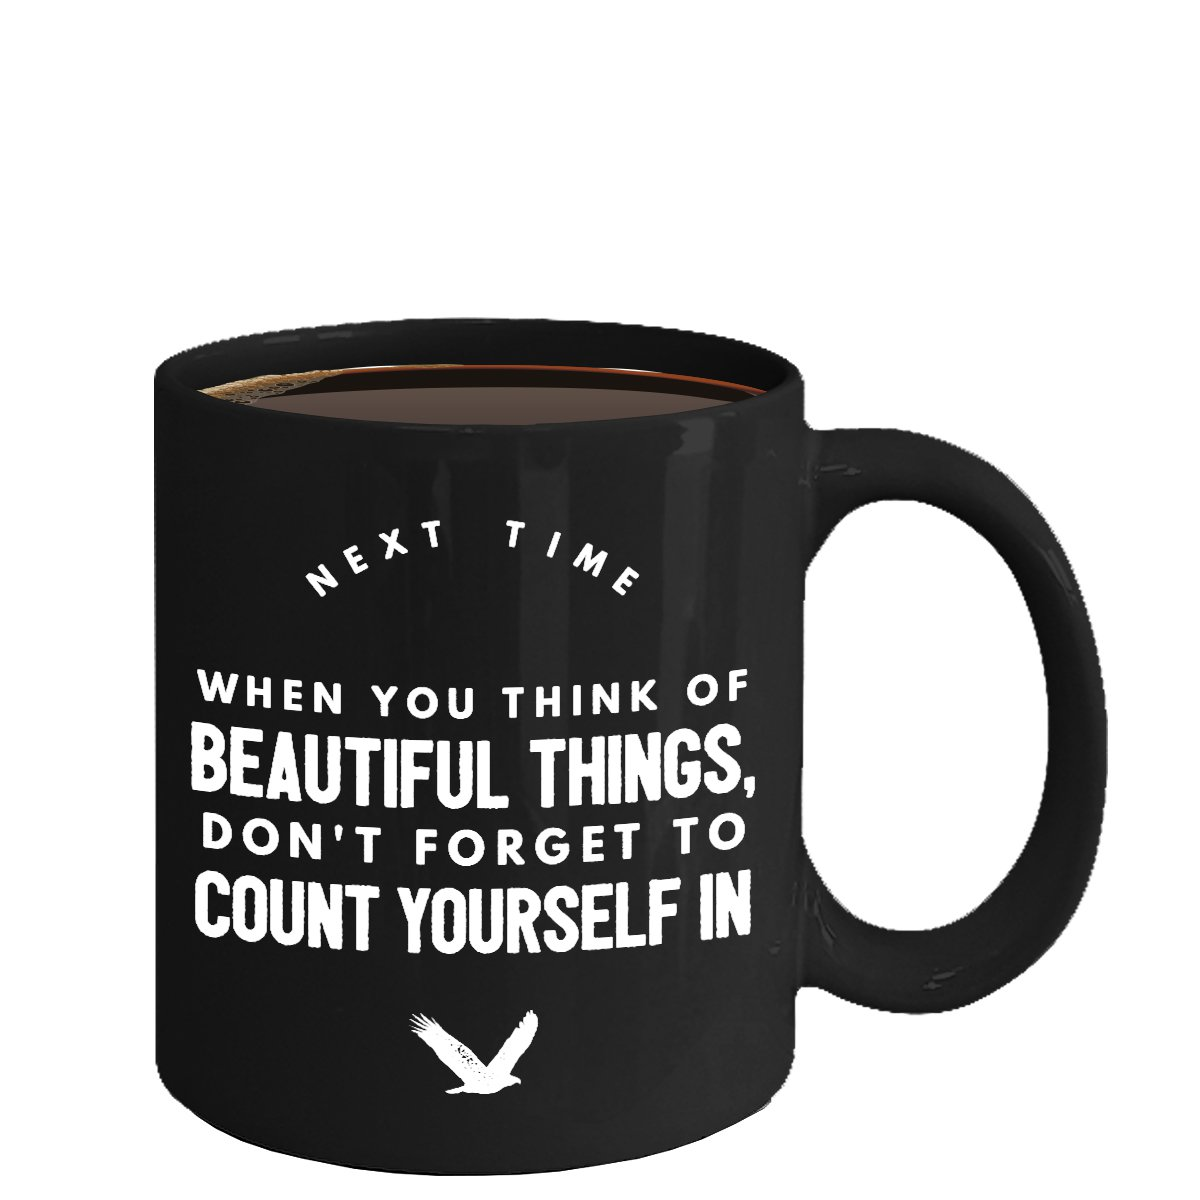 Inspirational Ceramic Coffee Mug - Count Yourself - Cool Large Cup (Black) - Best Gift for Men,Women